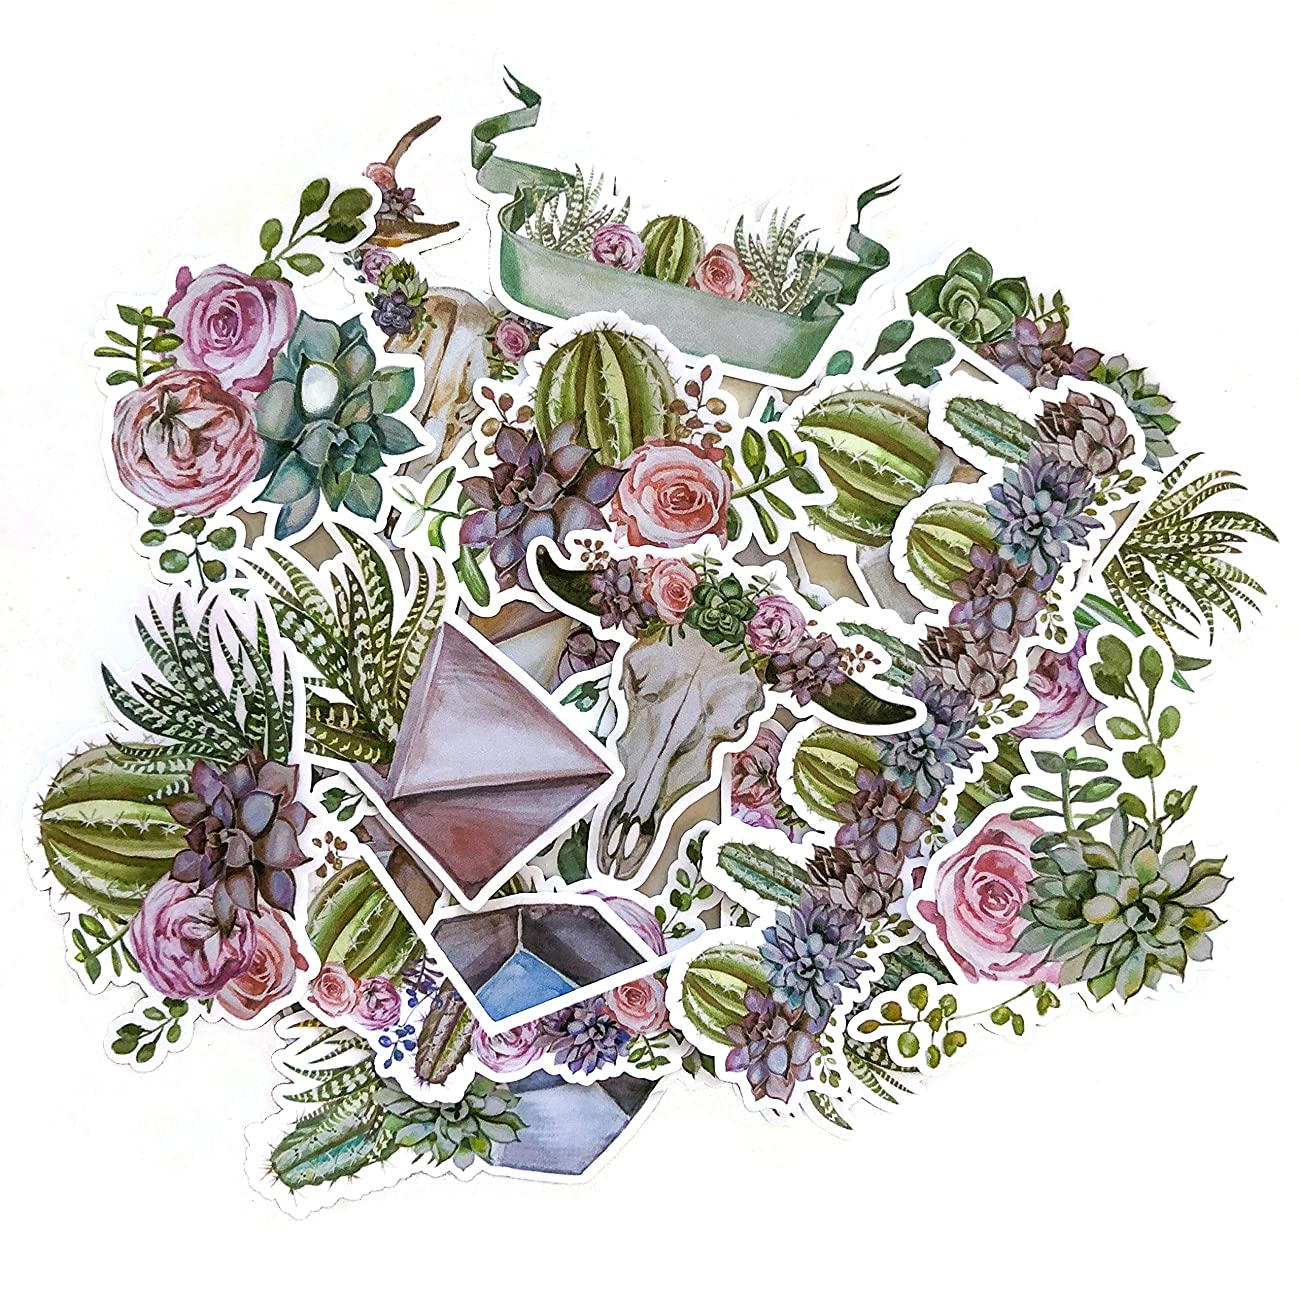 Navy Peony Geometric Terrarium Cactus and Succulent Stickers | Cool Decals for Laptops and Water Bottles and Phone Cases | Sticker Packs for Your Scrapbook, Planners and Bullet Journals (15 pieces)